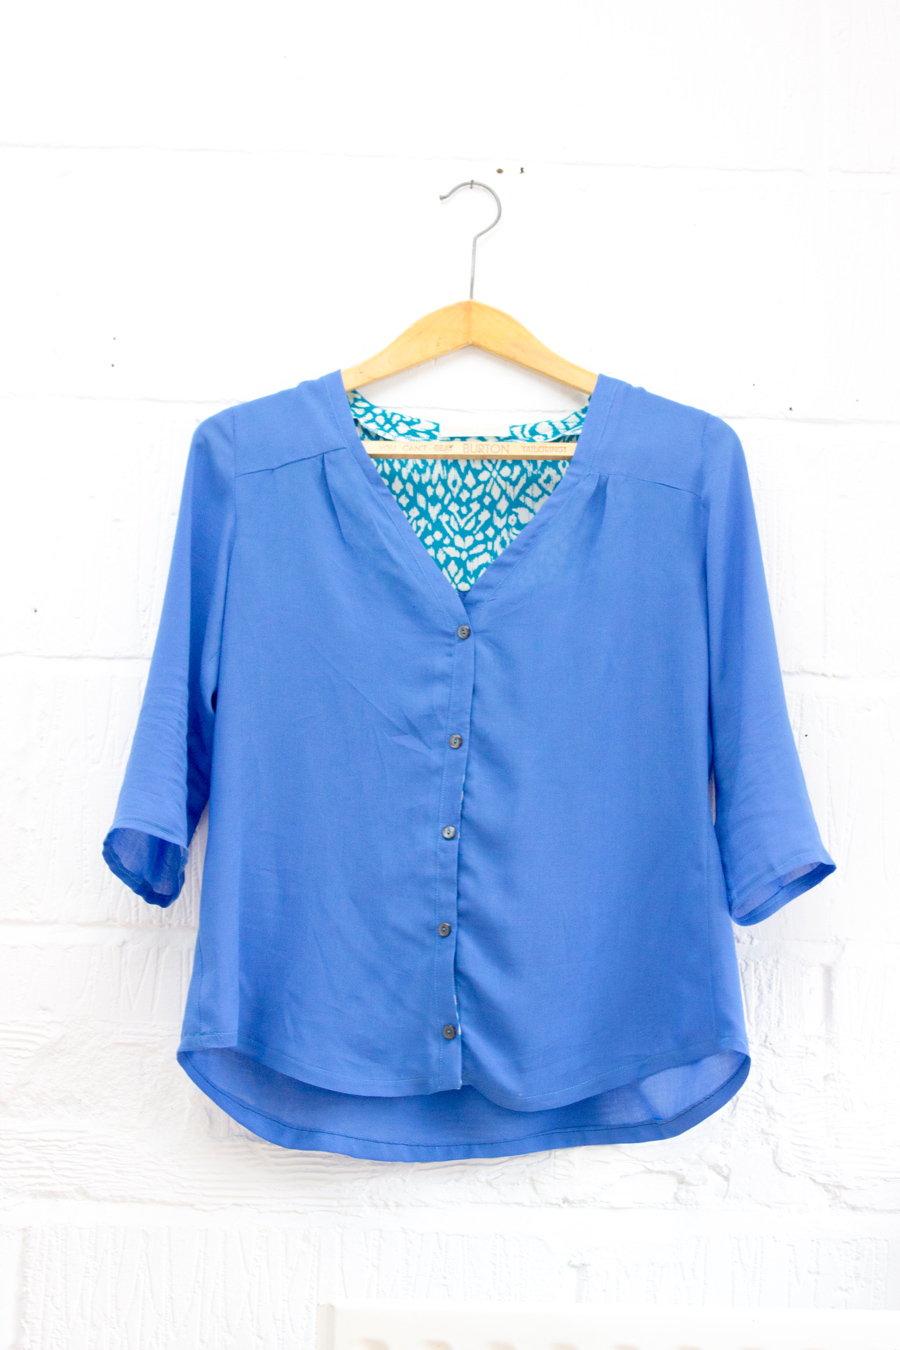 Thread Theory camas blouse Indiesew blogger network